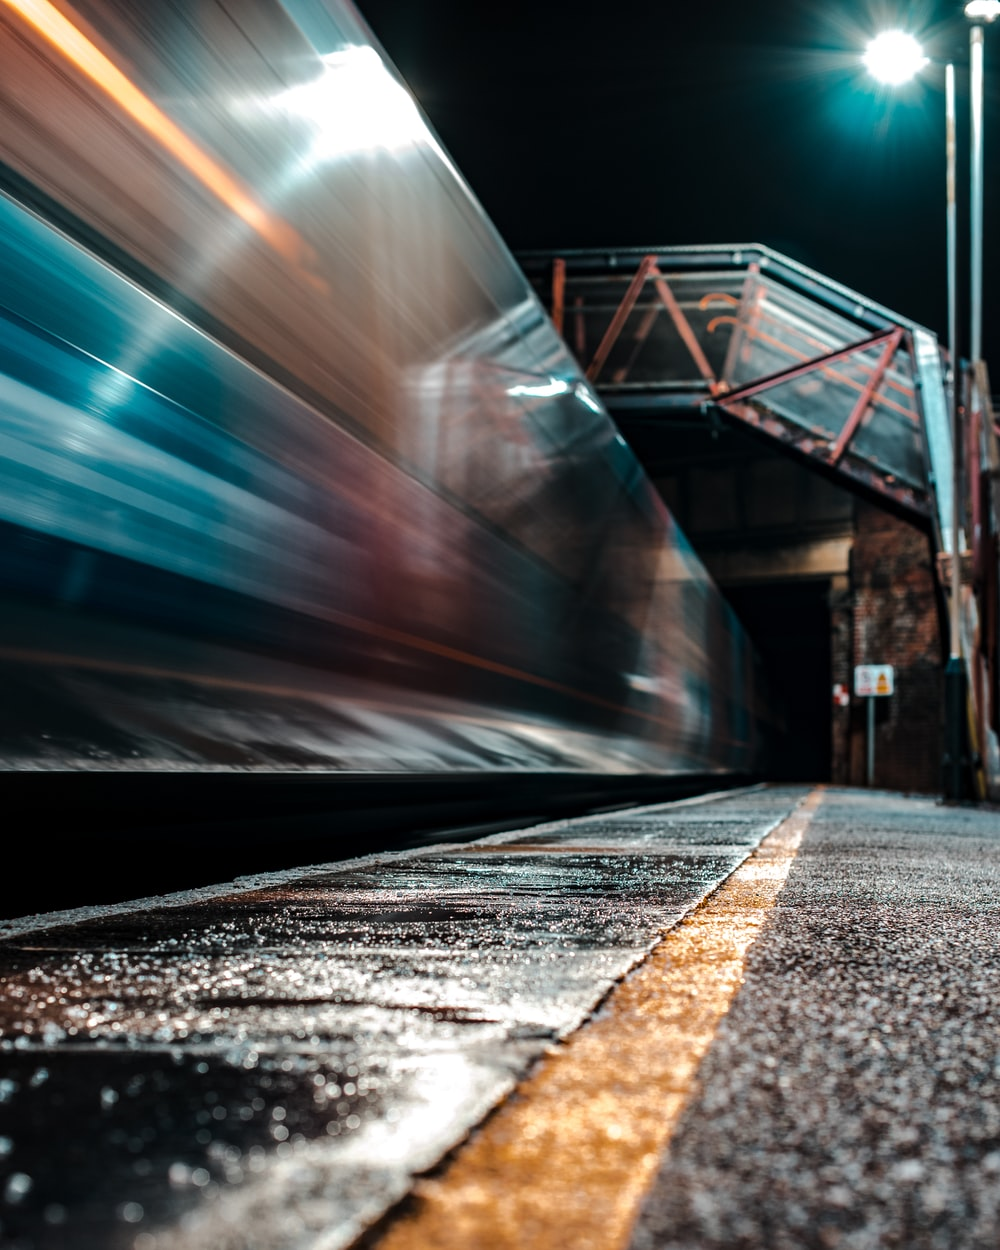 time-lapse photography of train during night